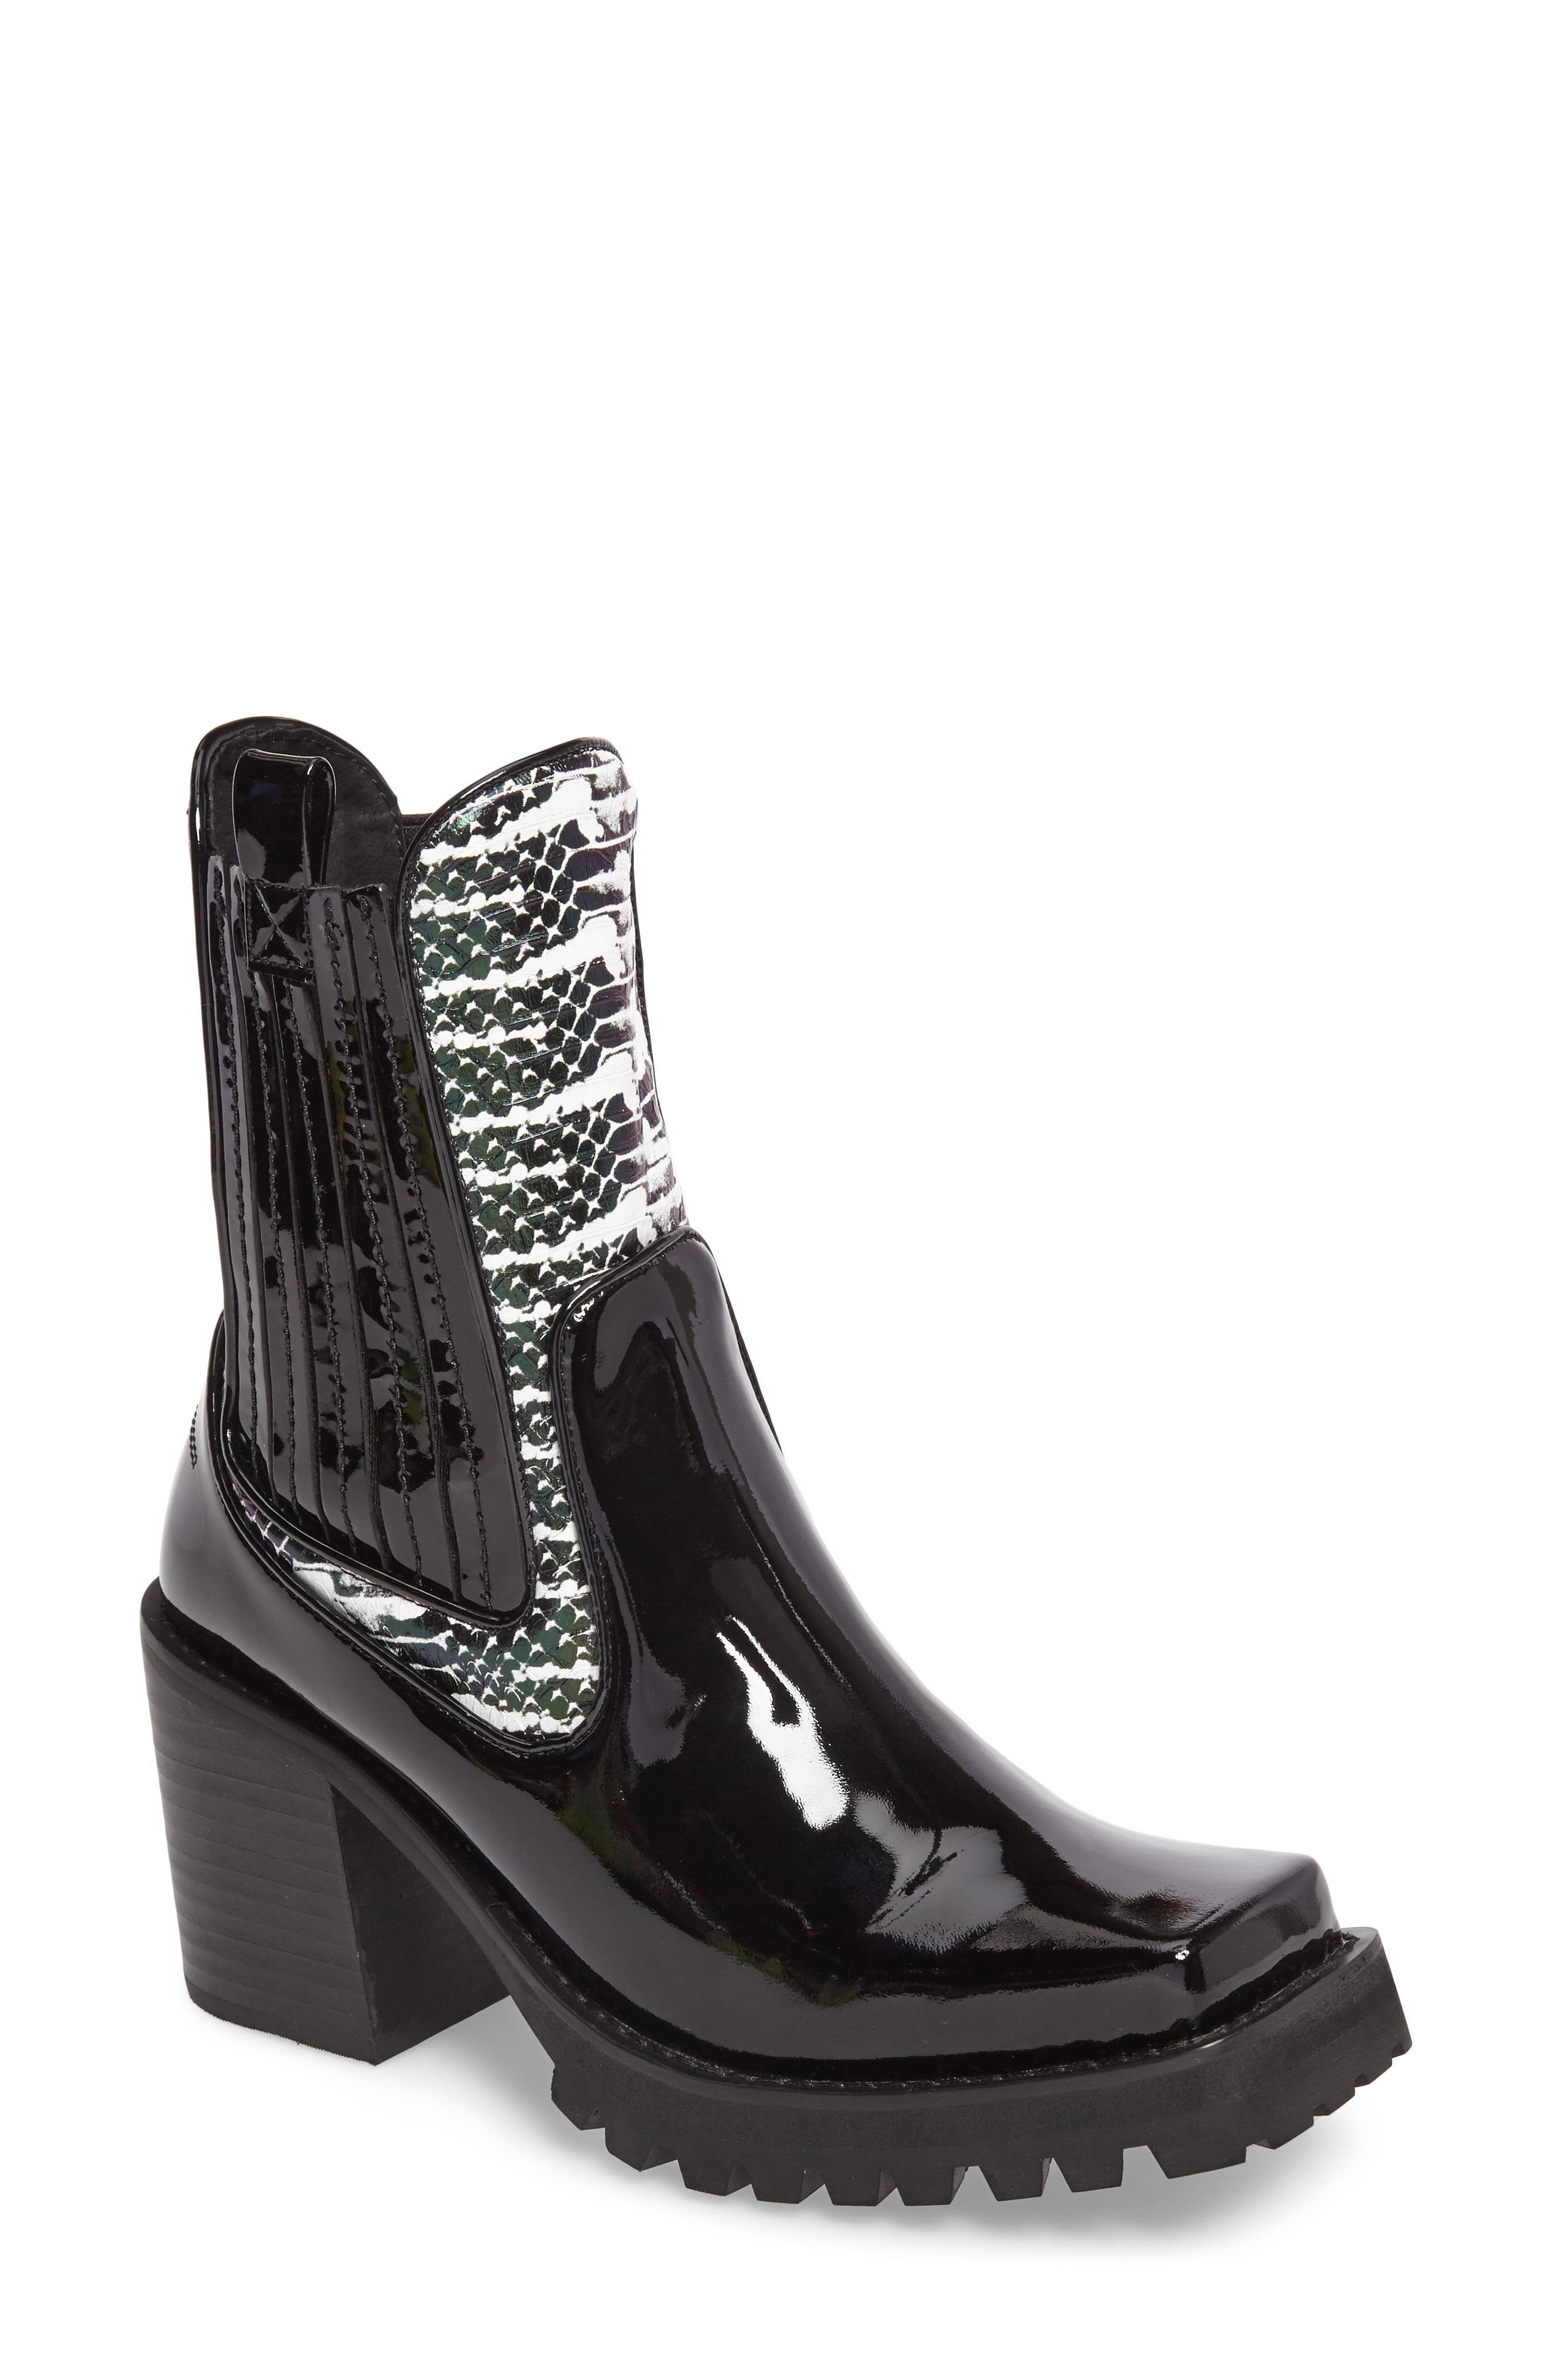 Elkins Boot,                         Main,                         color, Black Snake